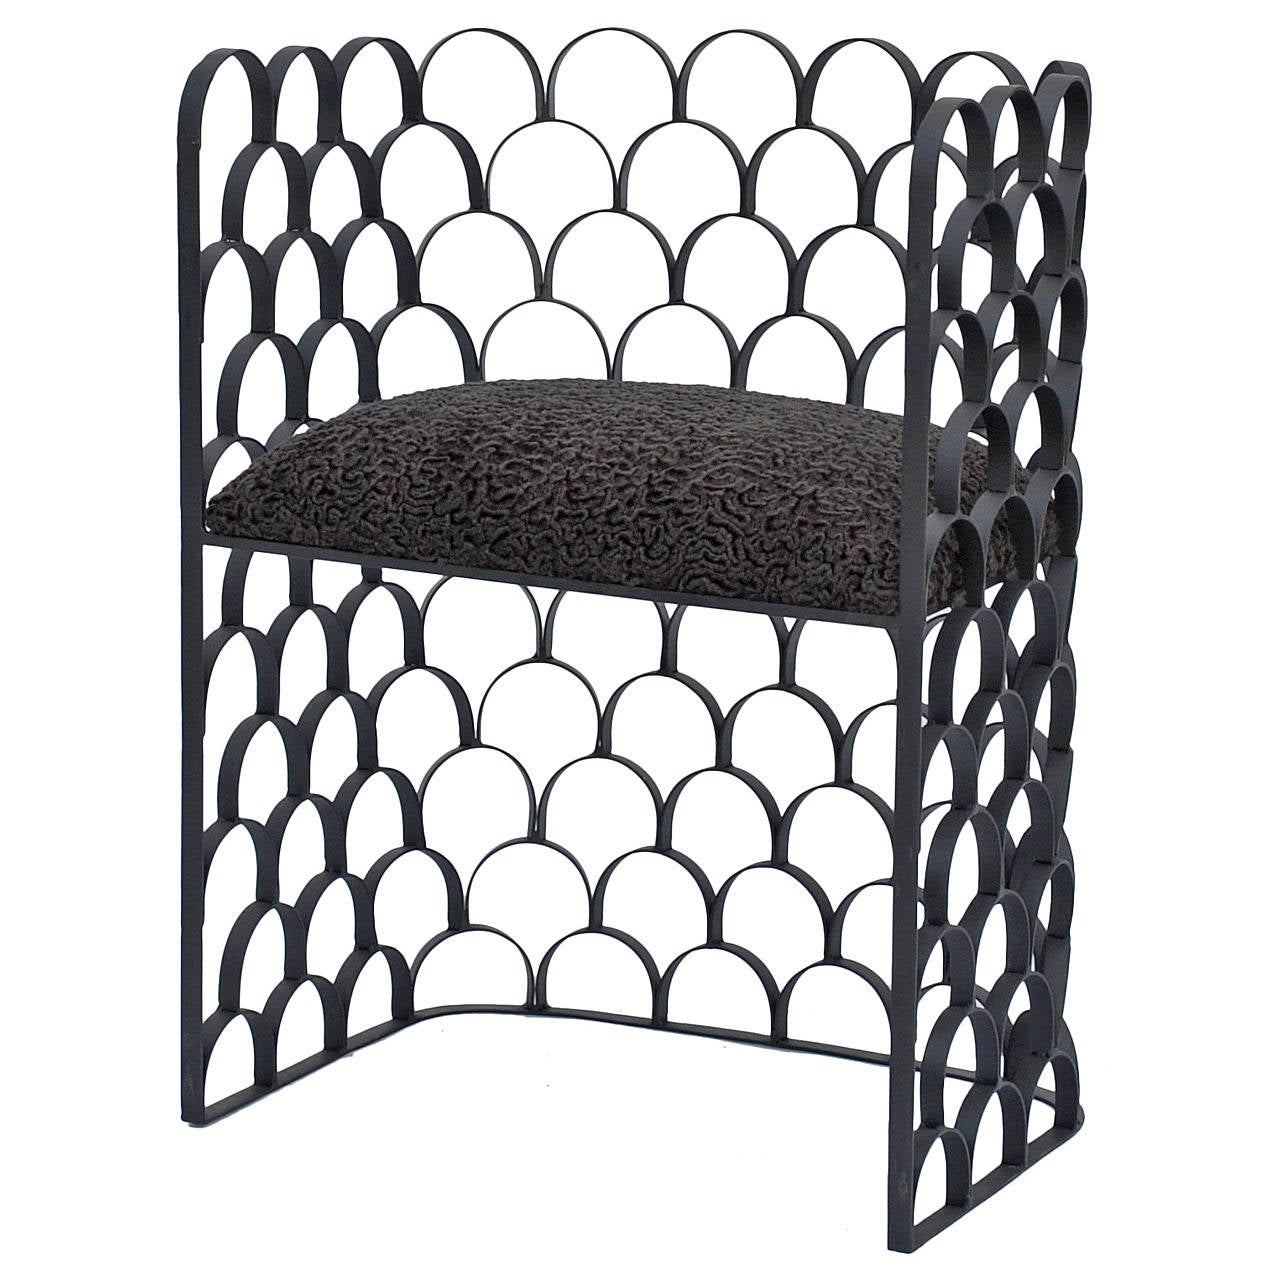 Sculptural Wrought Iron and Astrakhan Wool 'Arcature' Stool by Design Frères